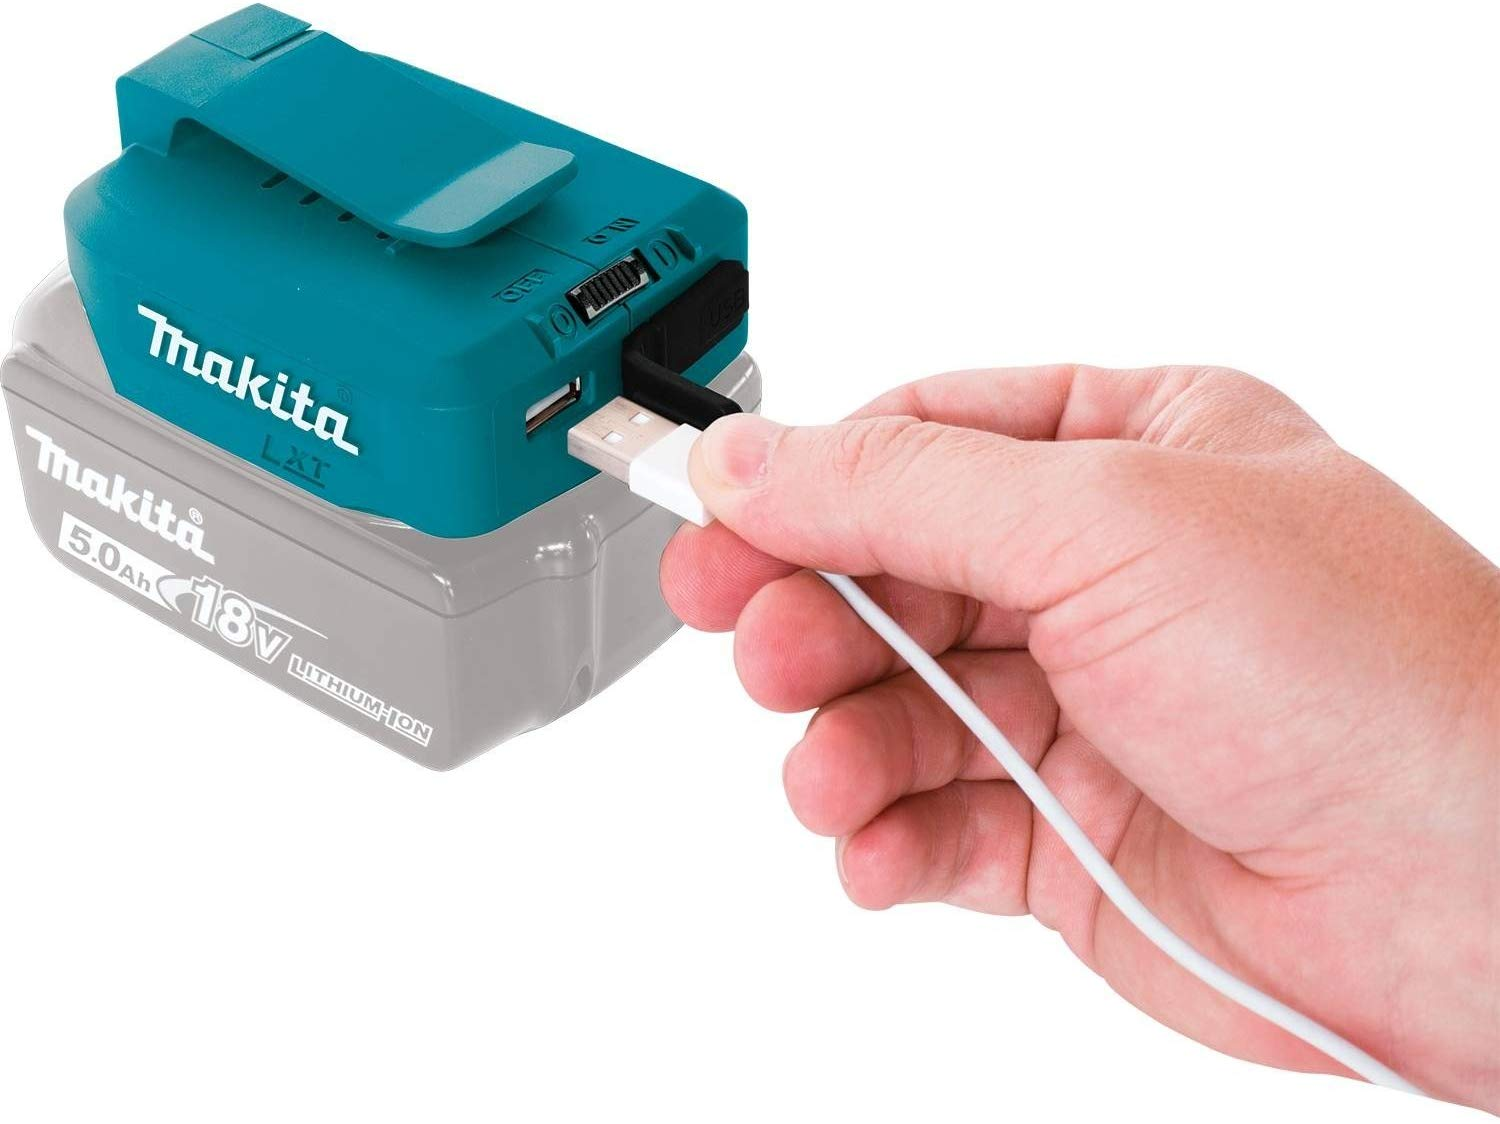 Makita USB Adapter amazon